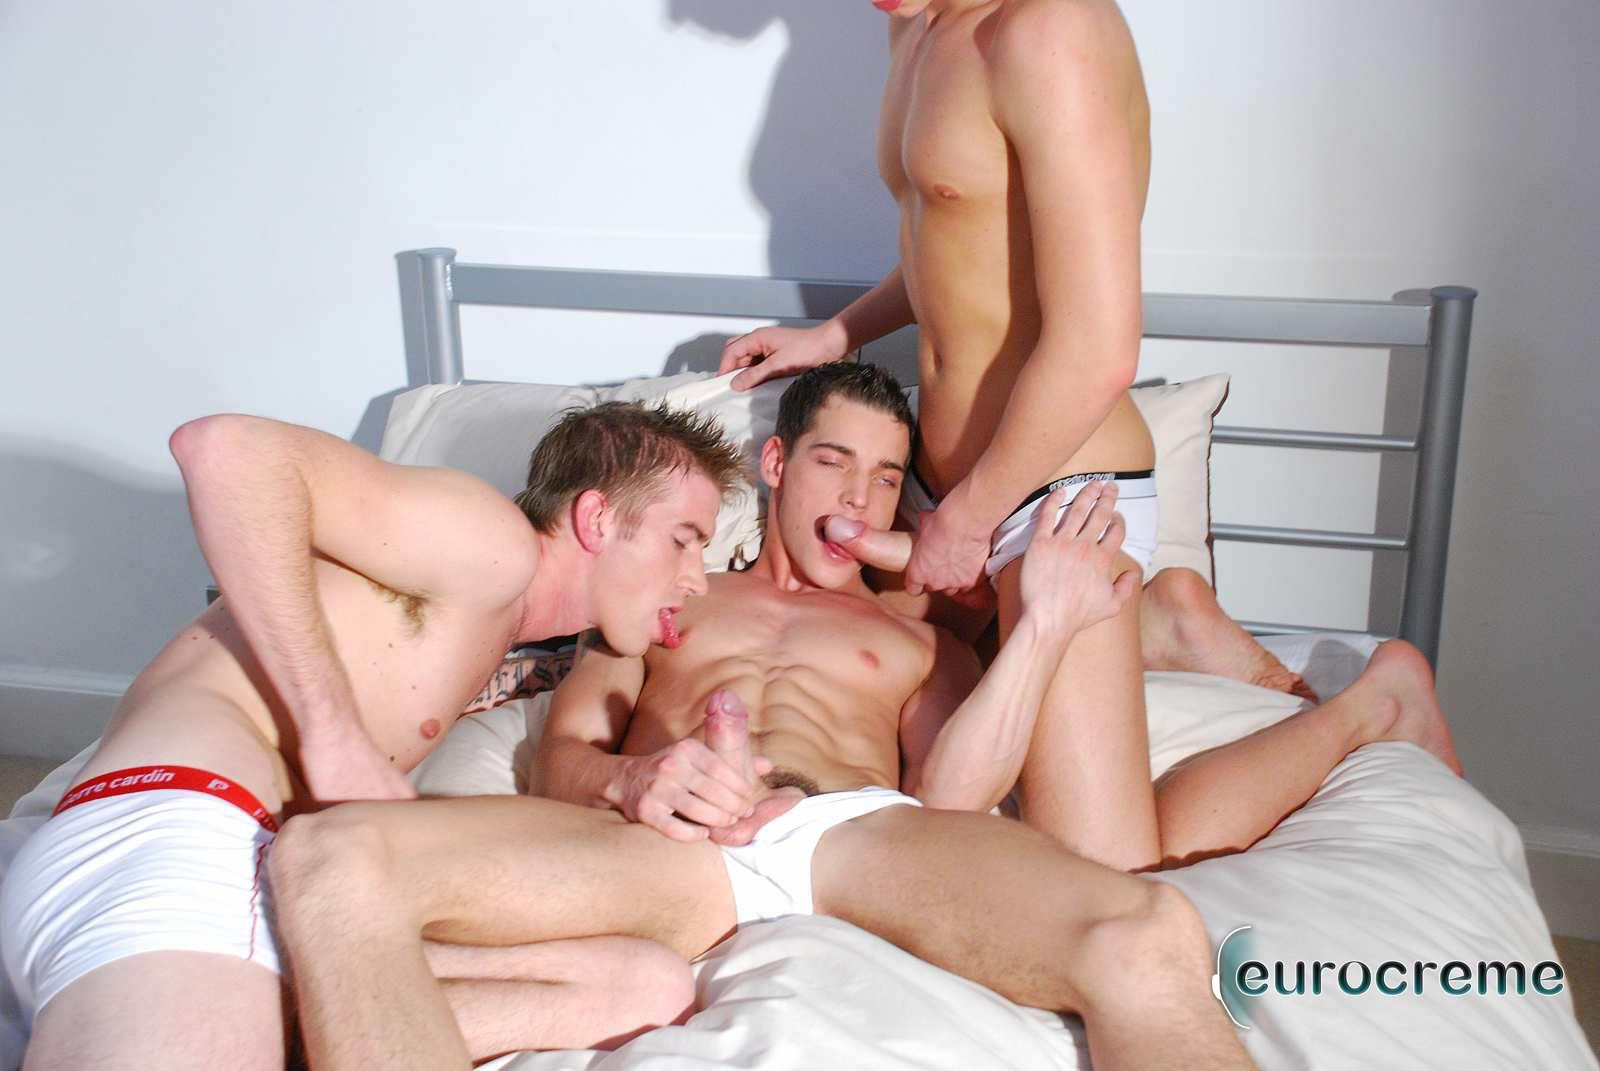 Eurocreme-Matt-Hughes-and-Alex-Stevens-and-Philipe-Delvaux-Twinks-Fucking-Amateur-Gay-Porn-06 Matt Hughes Uses His 11-Inch Uncut Cock On Two Tricks